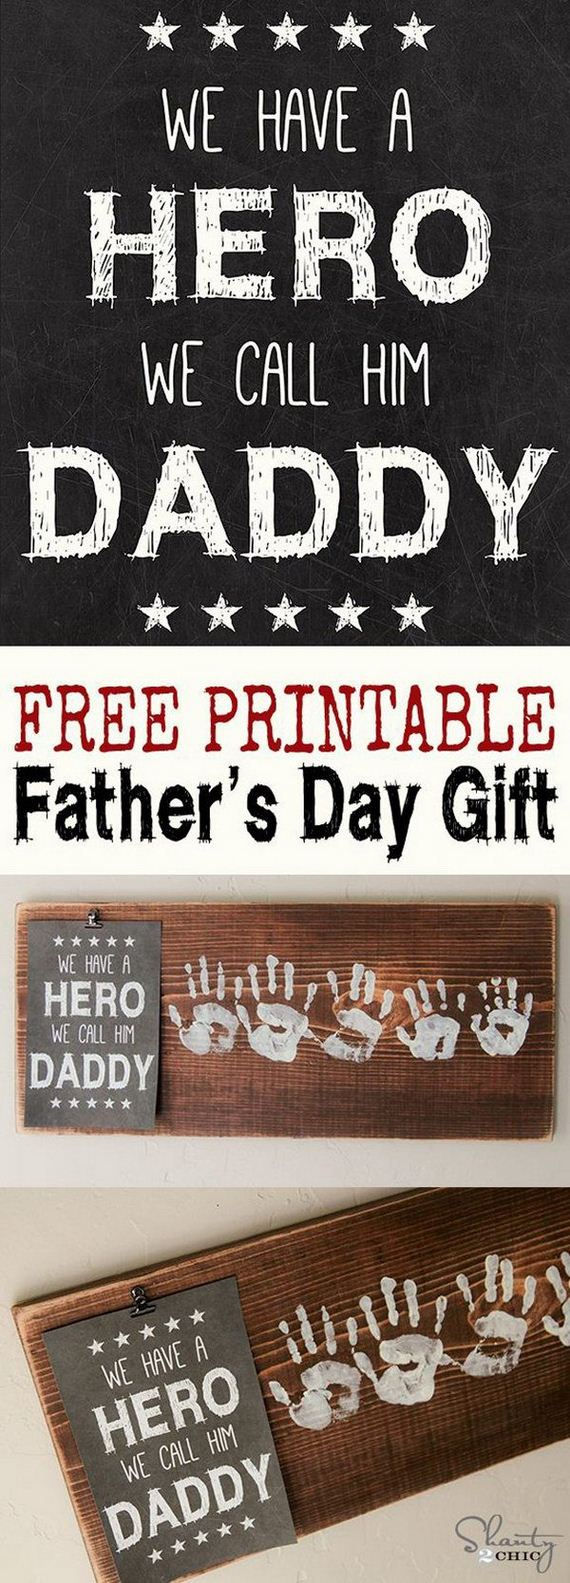 01-diy-fathers-day-gift-ideas